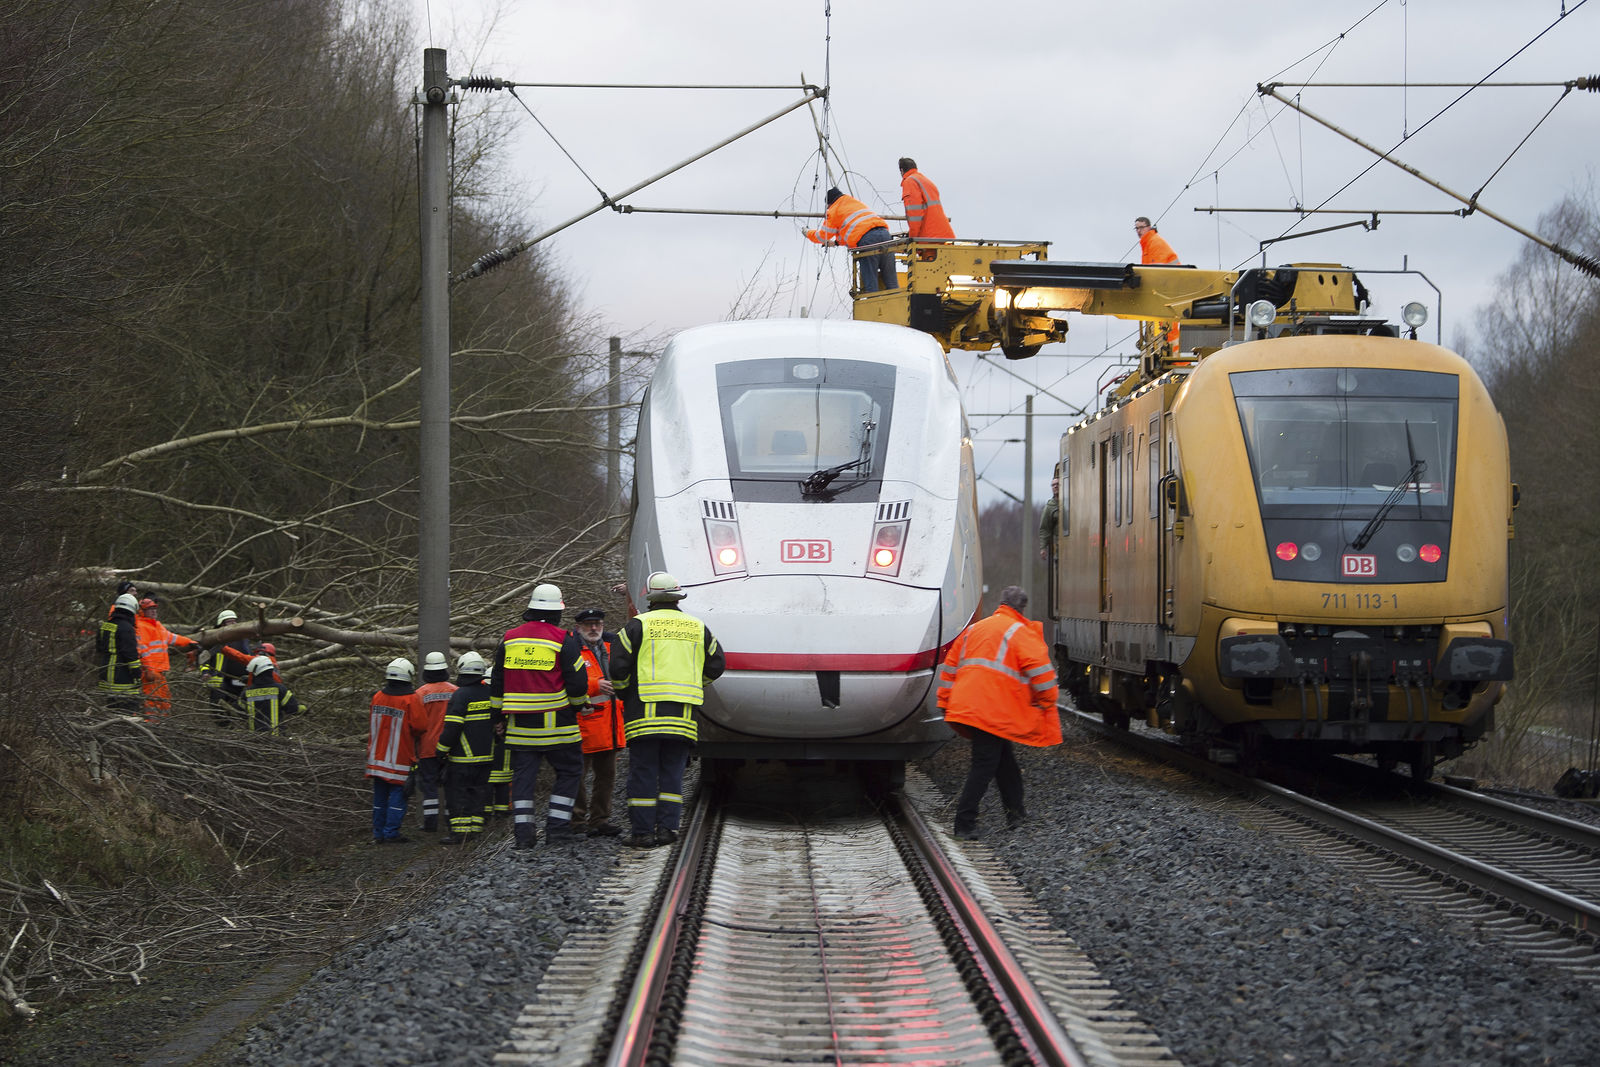 An ICE train of the Deutsche Bahn, left, is stopped on the track between Hannover and Goettingen near the village of Lamspringe, Germany, Thursday, Jan. 18, 2017, as rail workers on a maintenance train repair overhead power wires whilst others clear debris caused by fallen trees.(Swen Pf'rtner/dpa via AP)